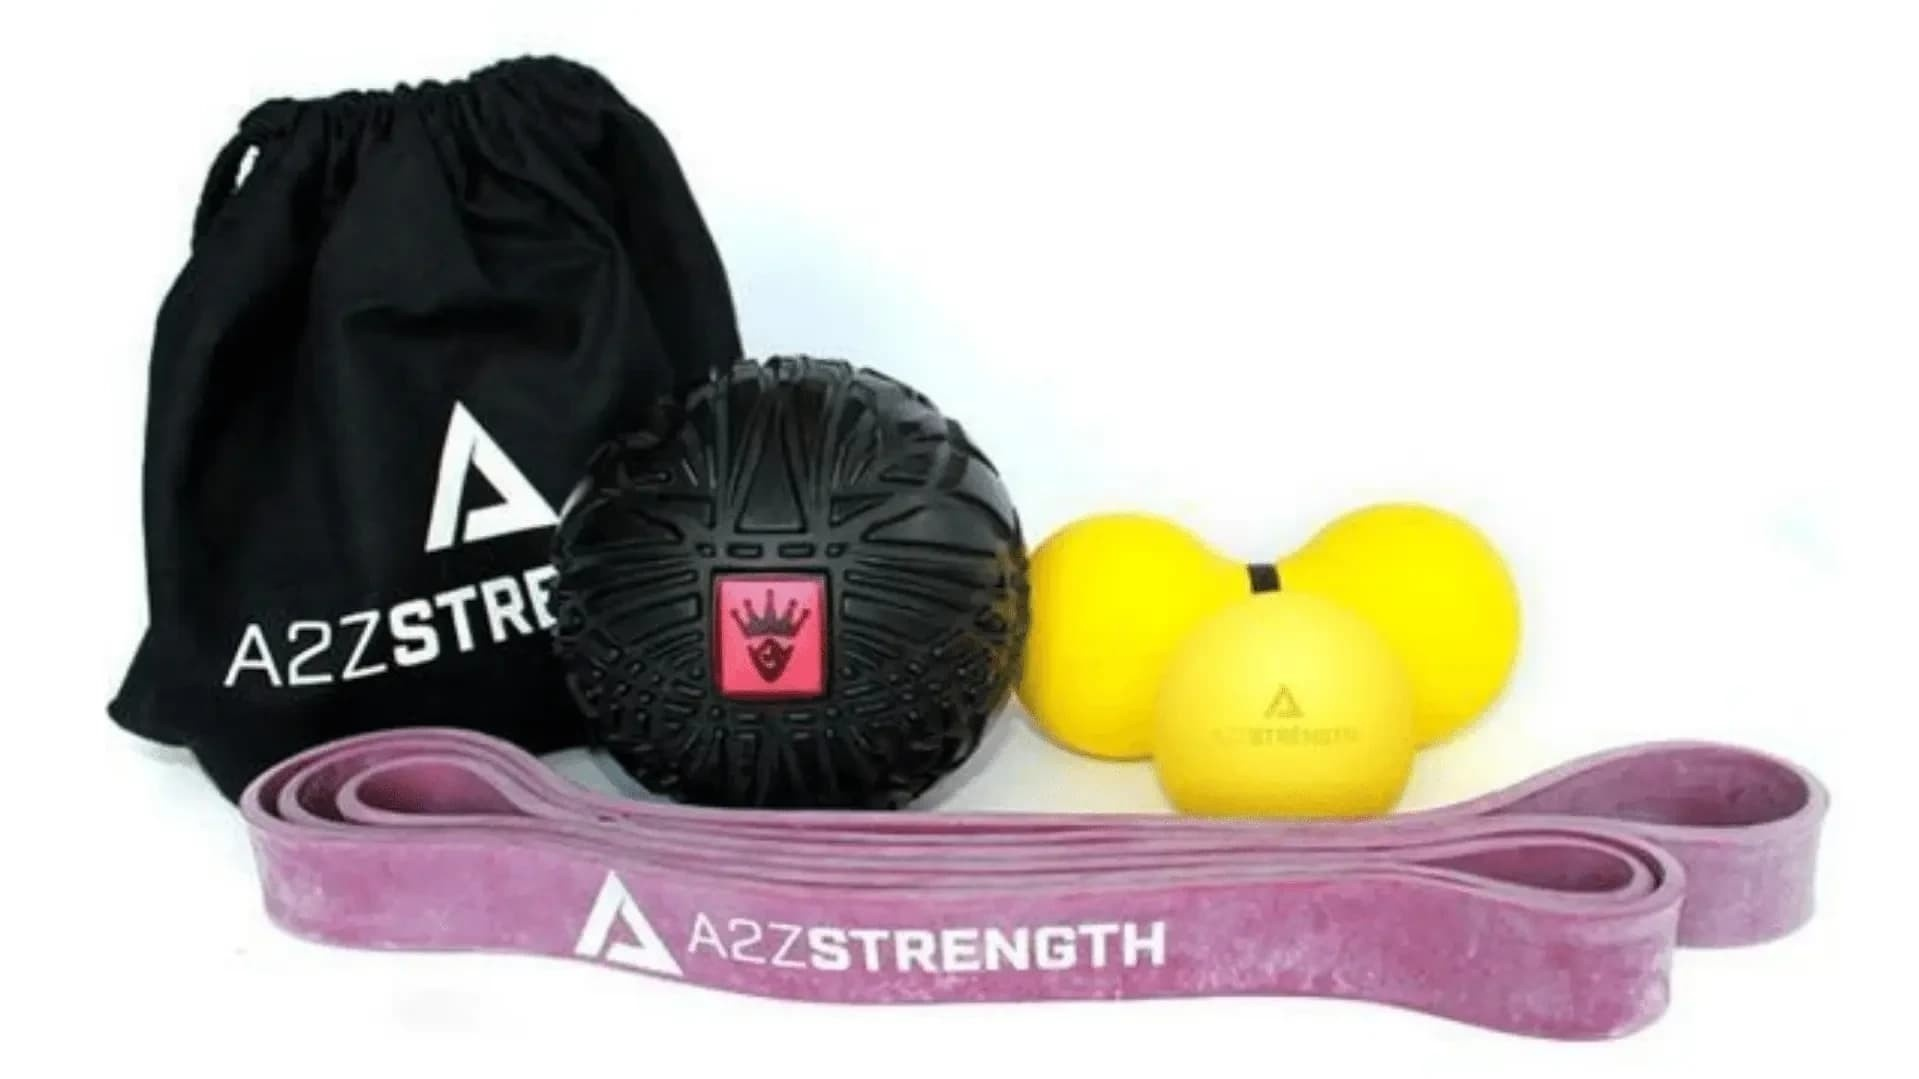 tennis-pro-training-and-recovery-packs